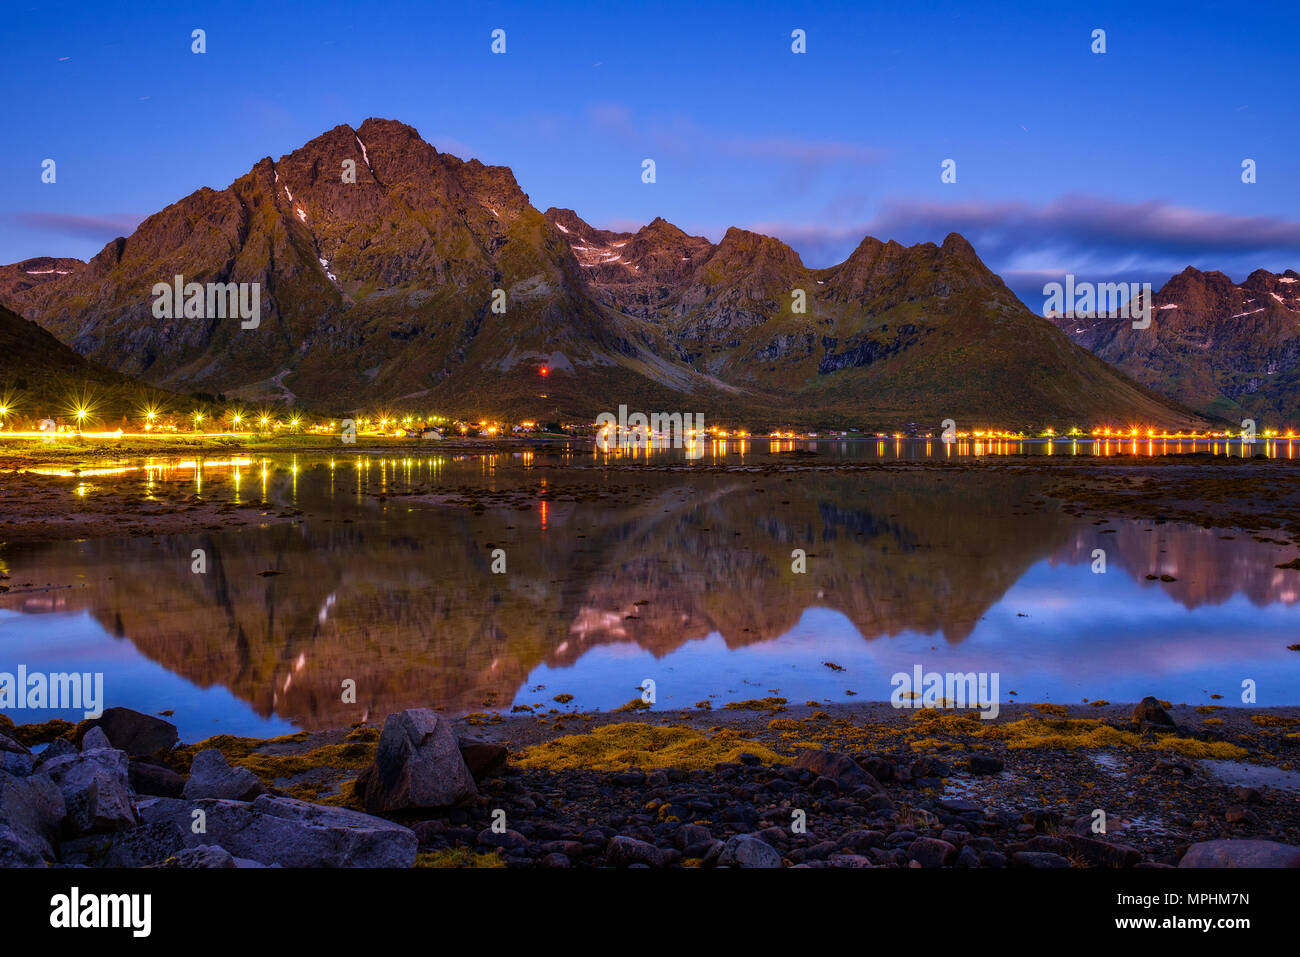 Evening at a fishing village on Lofoten islands in Norway  - Stock Image